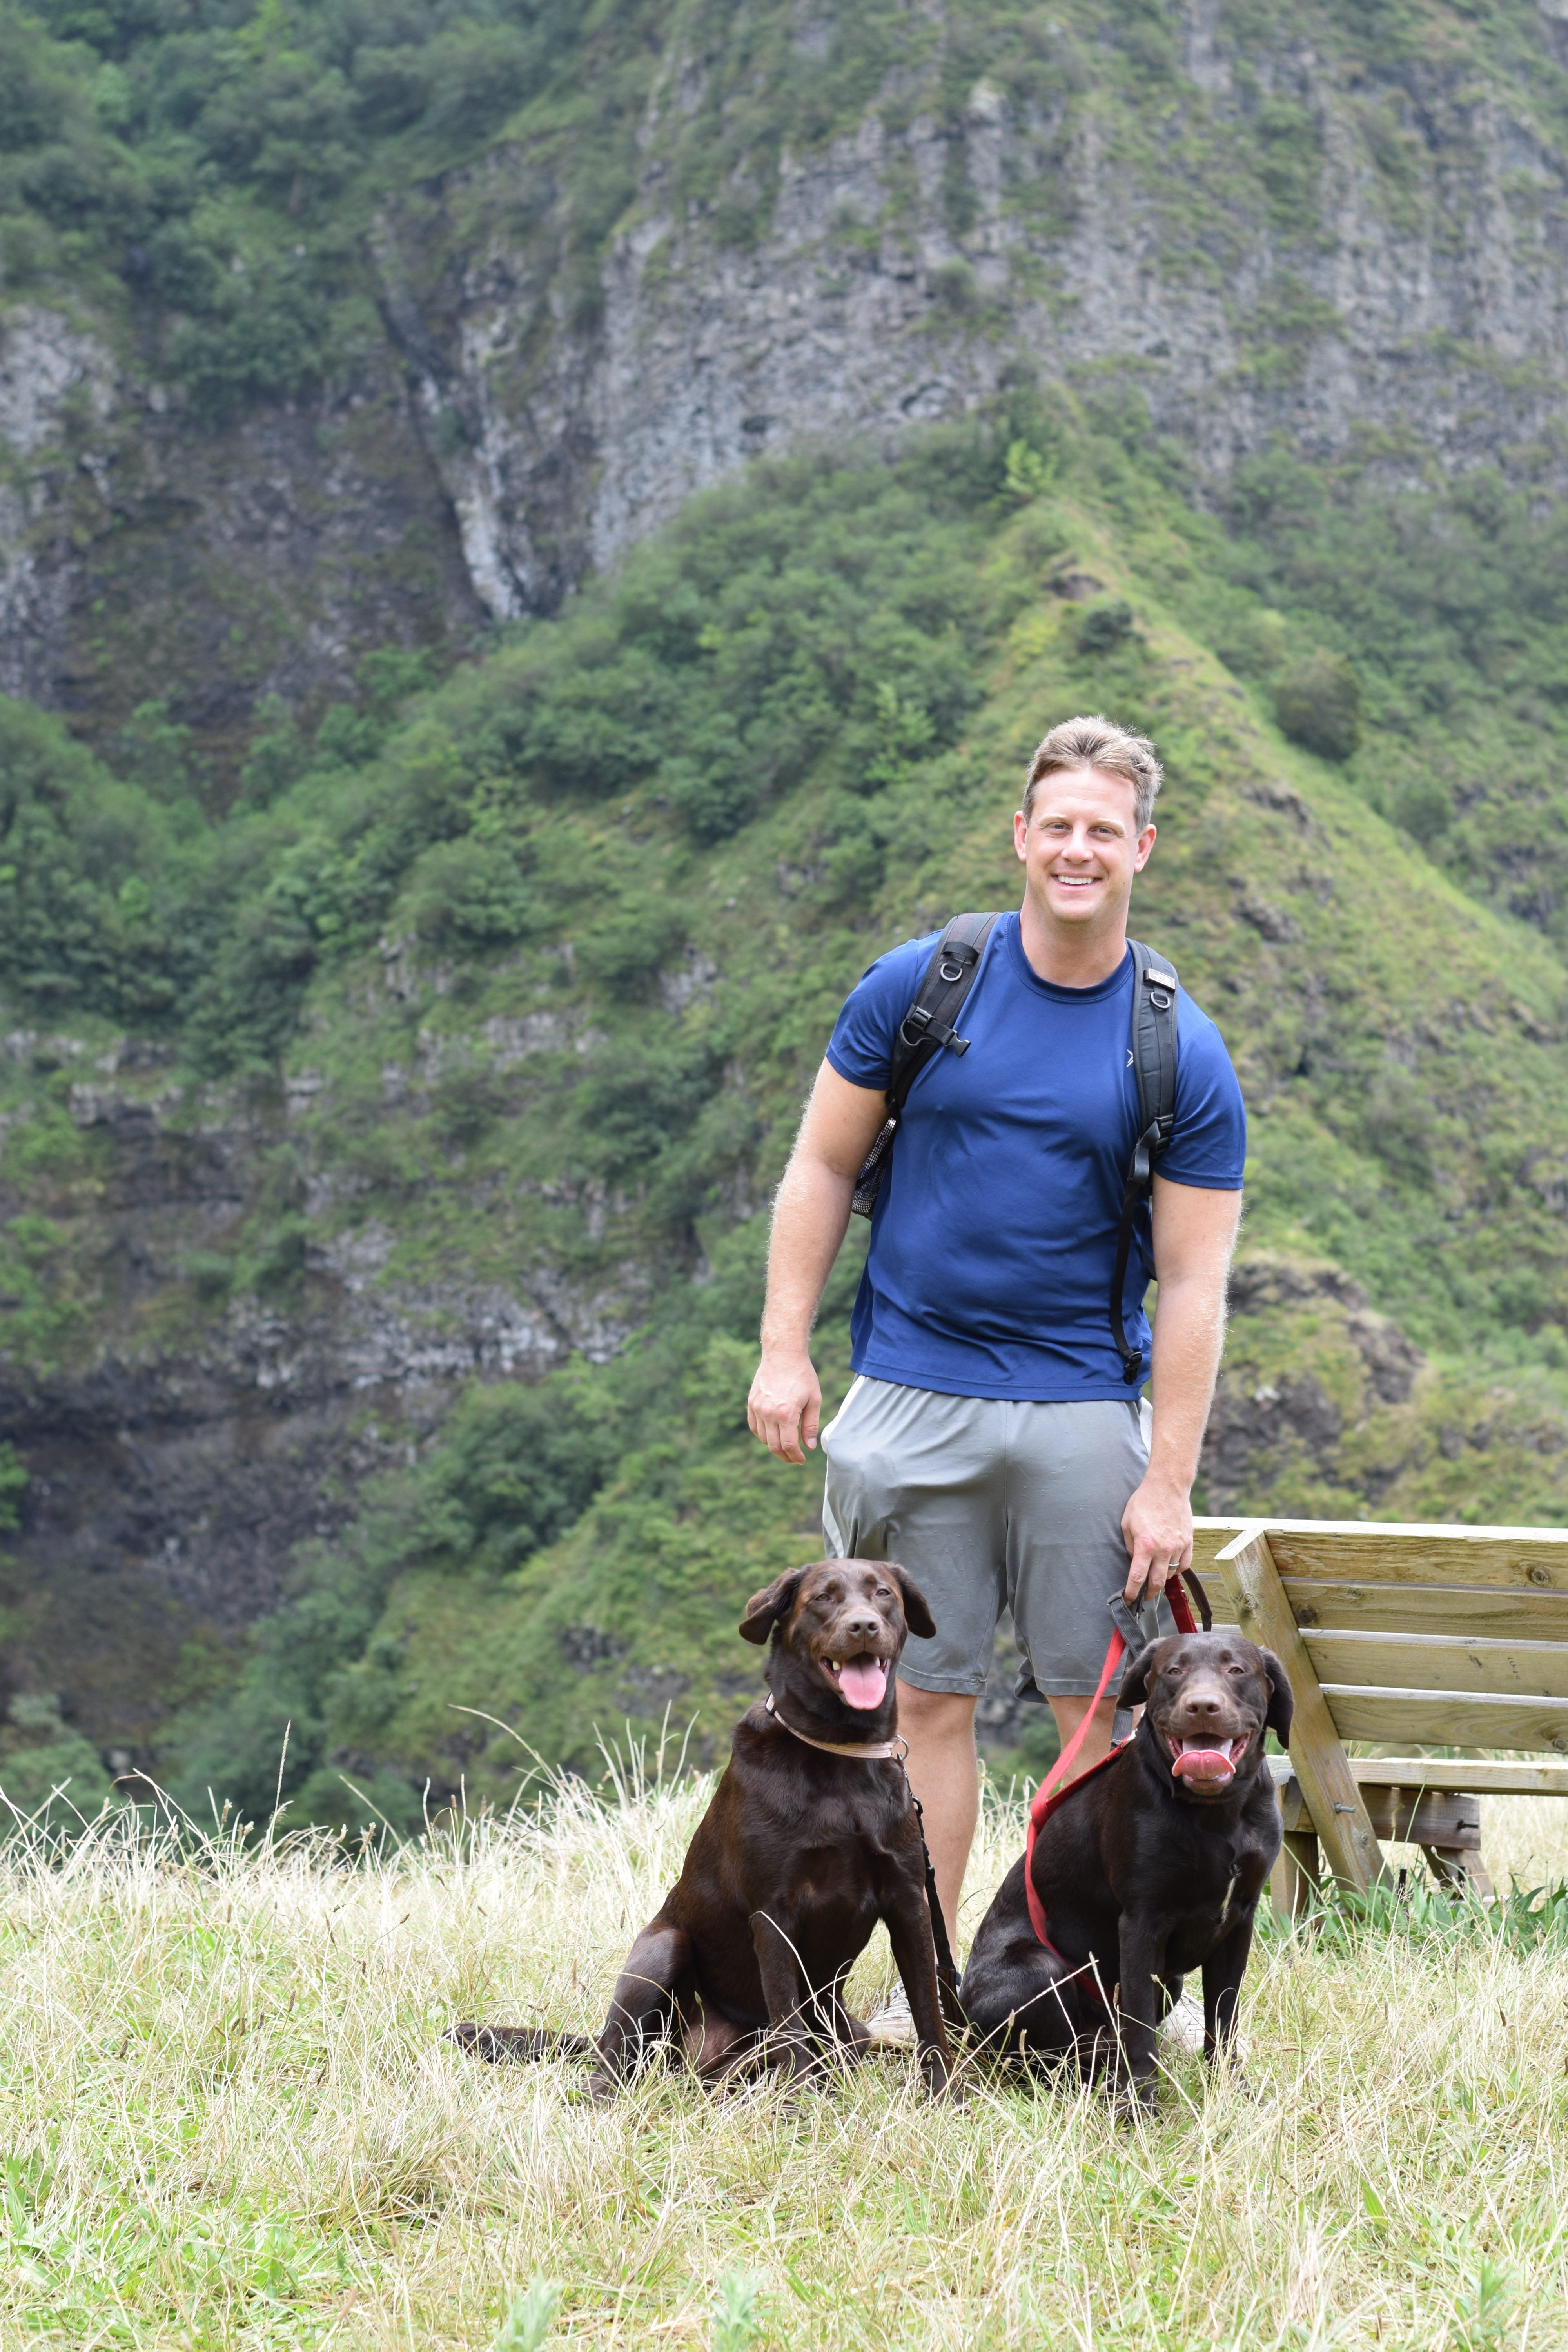 Dog Friendly Guide To Hawaii - Dog Friendly Hikes In Hawaii